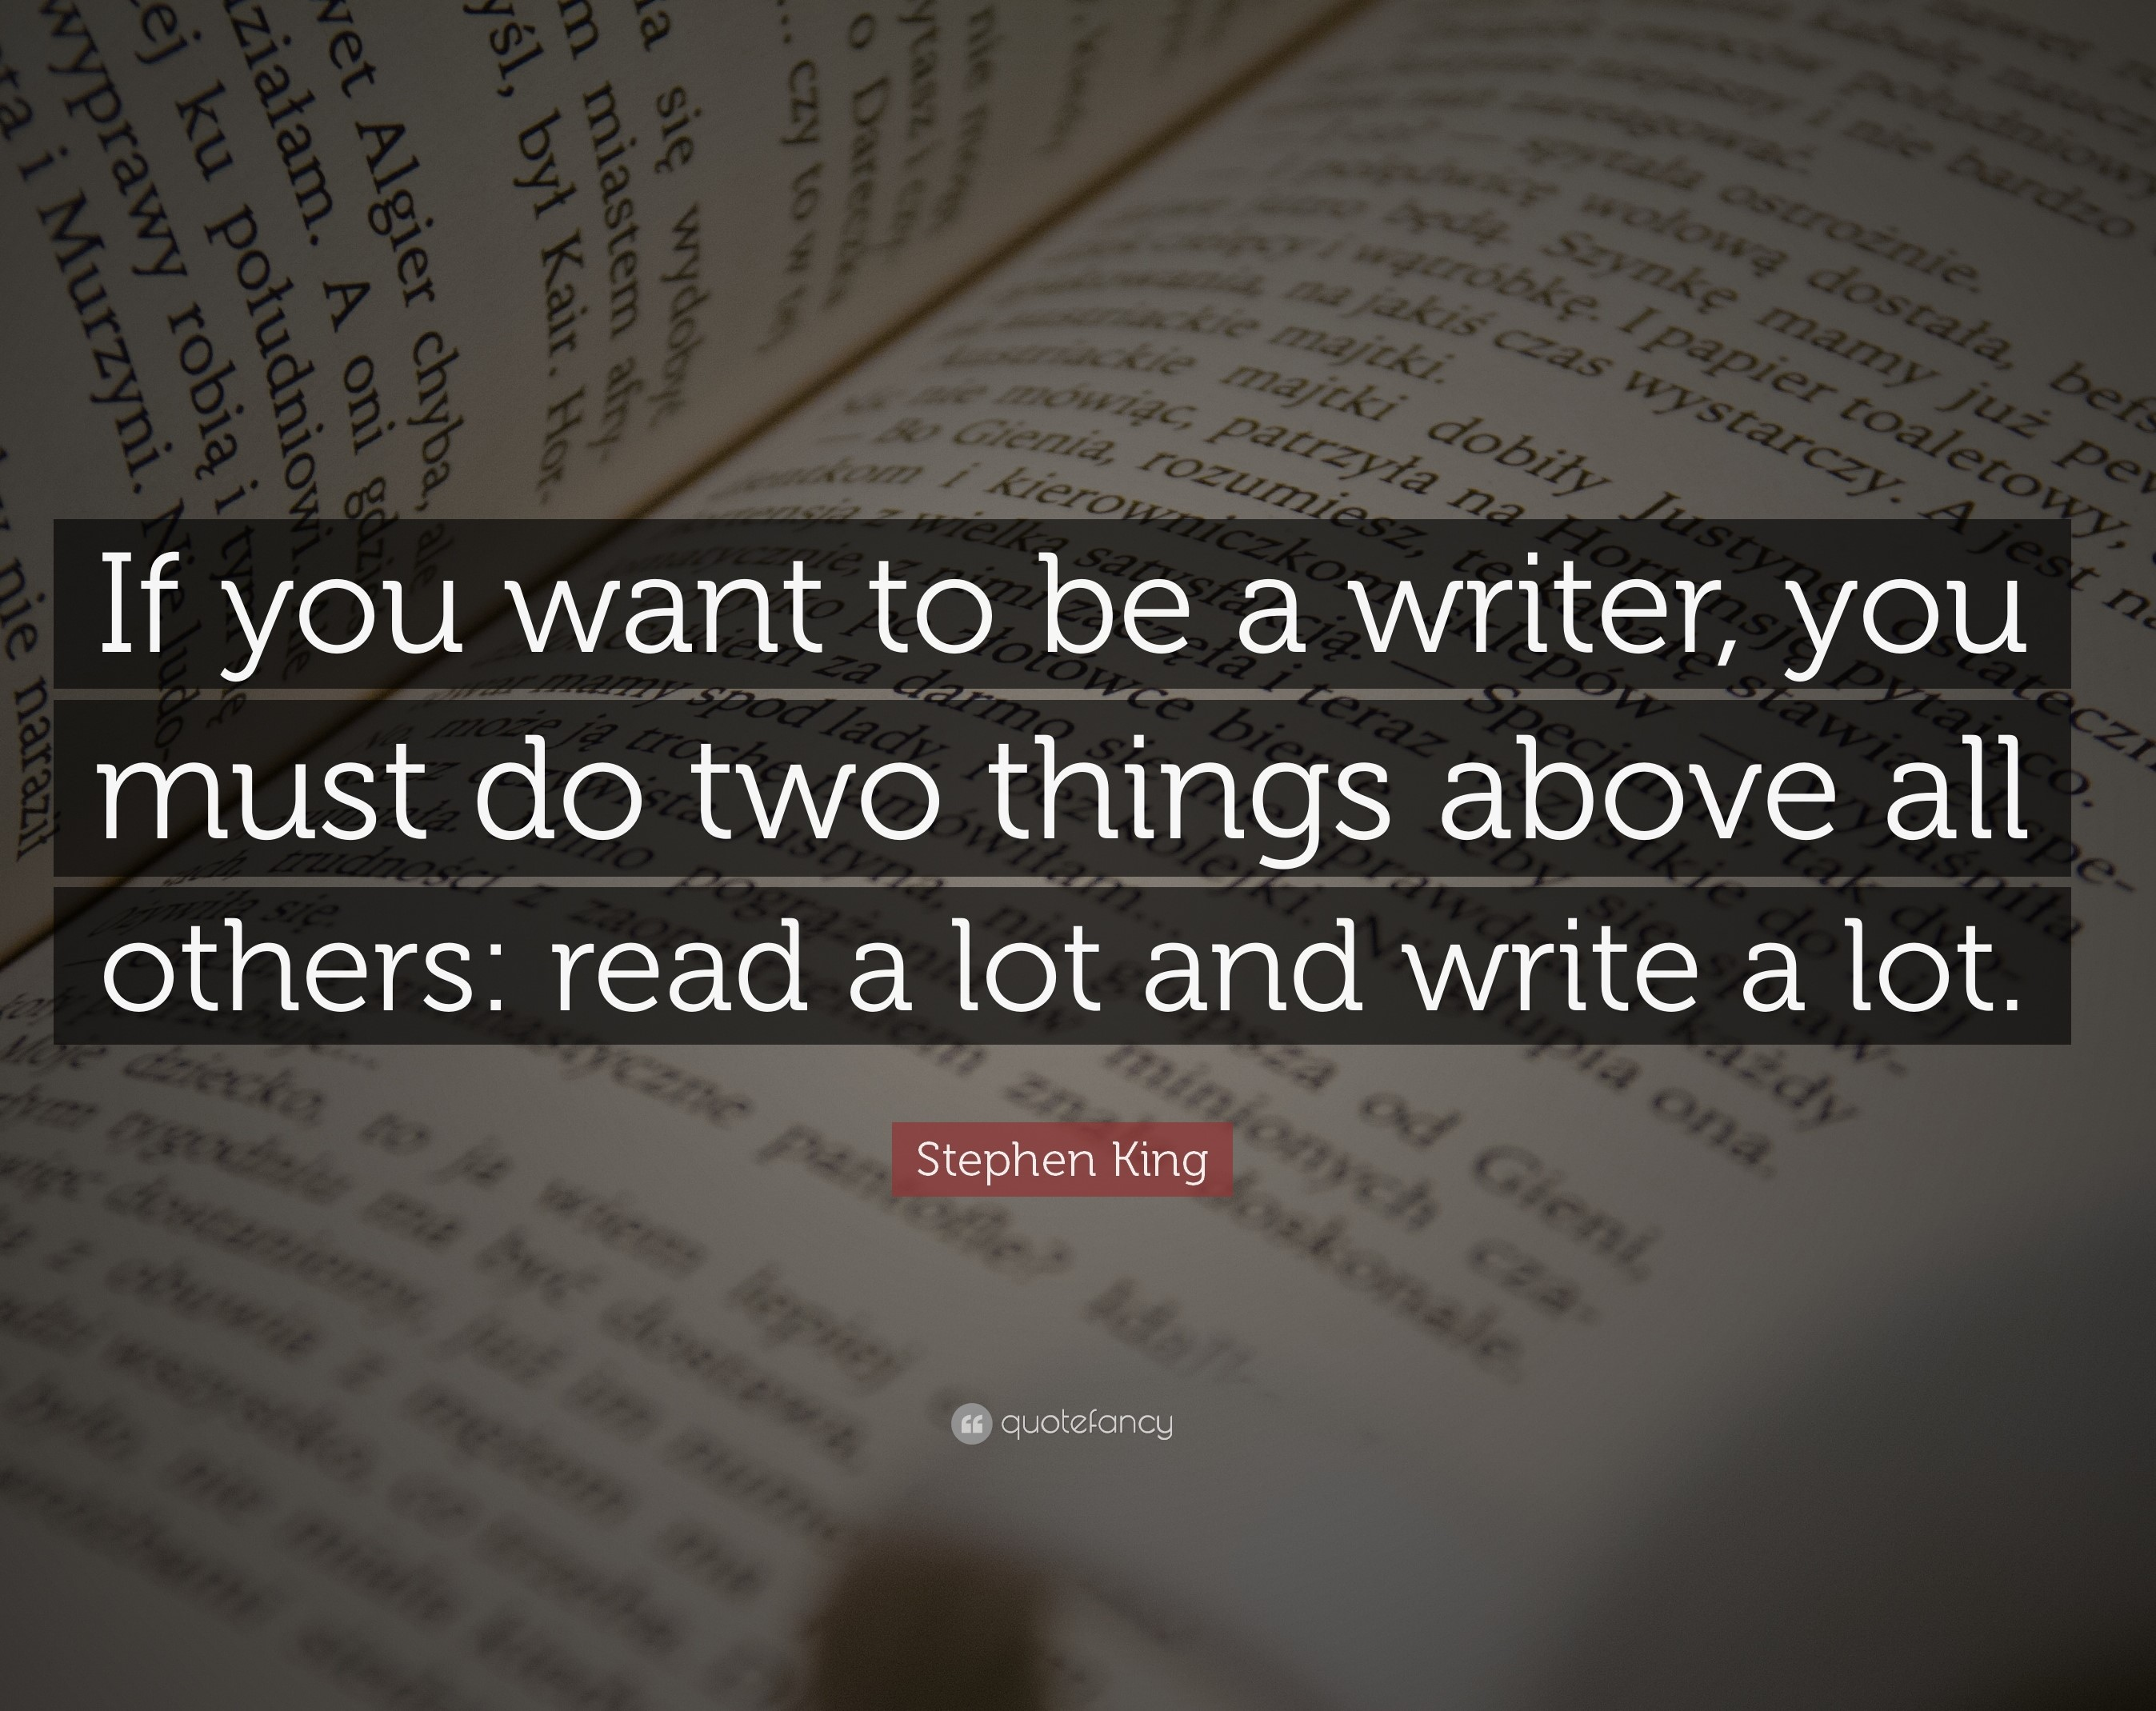 6840-Stephen-King-Quote-If-you-want-to-be-a-writer-you-must-do-two